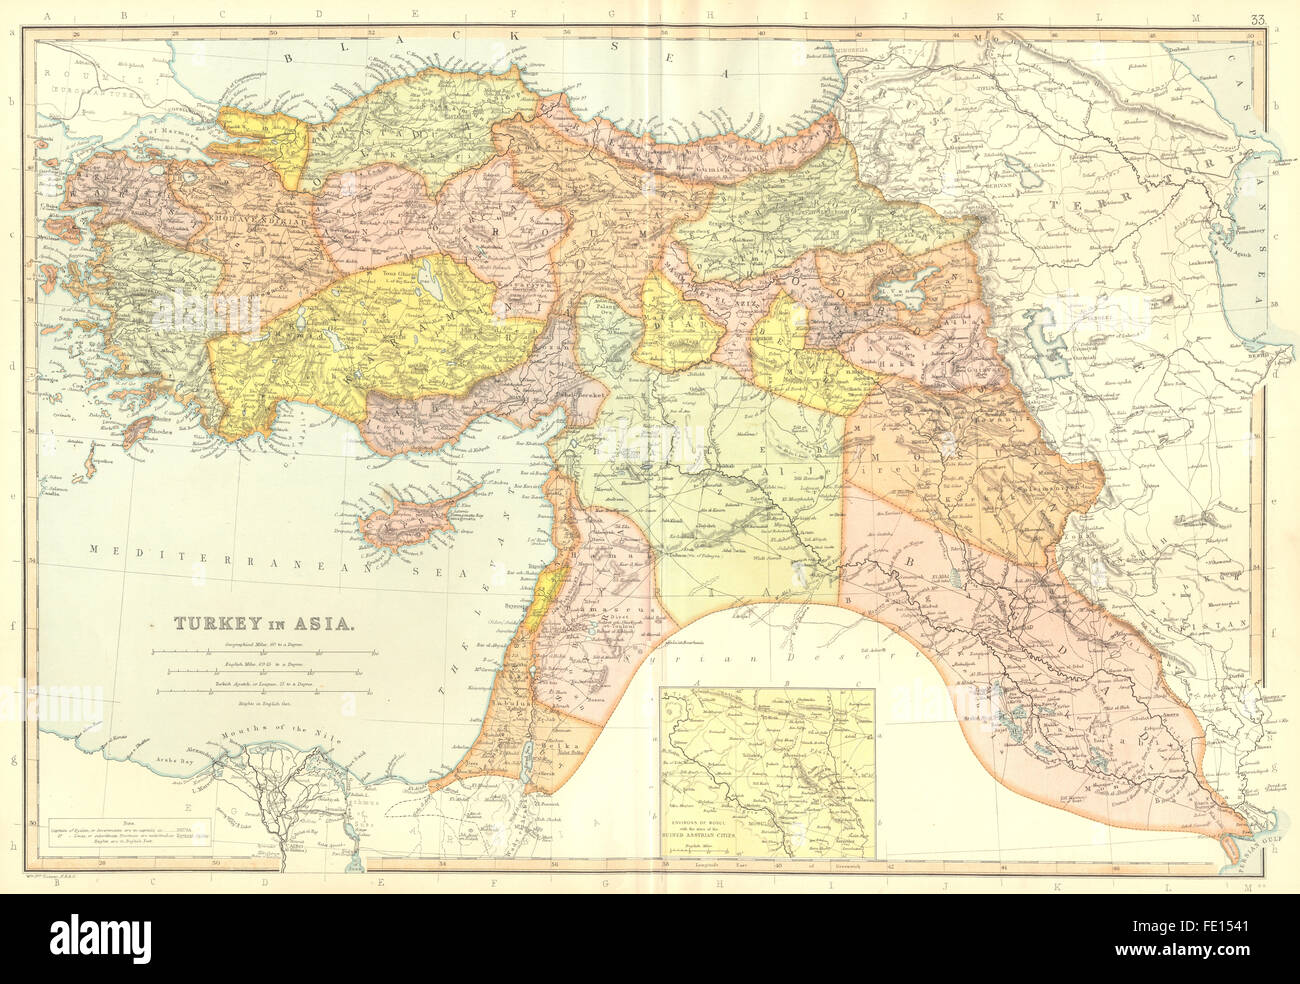 Turkey in asia iraq syria palestineset mosul assyrian cities turkey in asia iraq syria palestineset mosul assyrian cities 1893 map gumiabroncs Choice Image